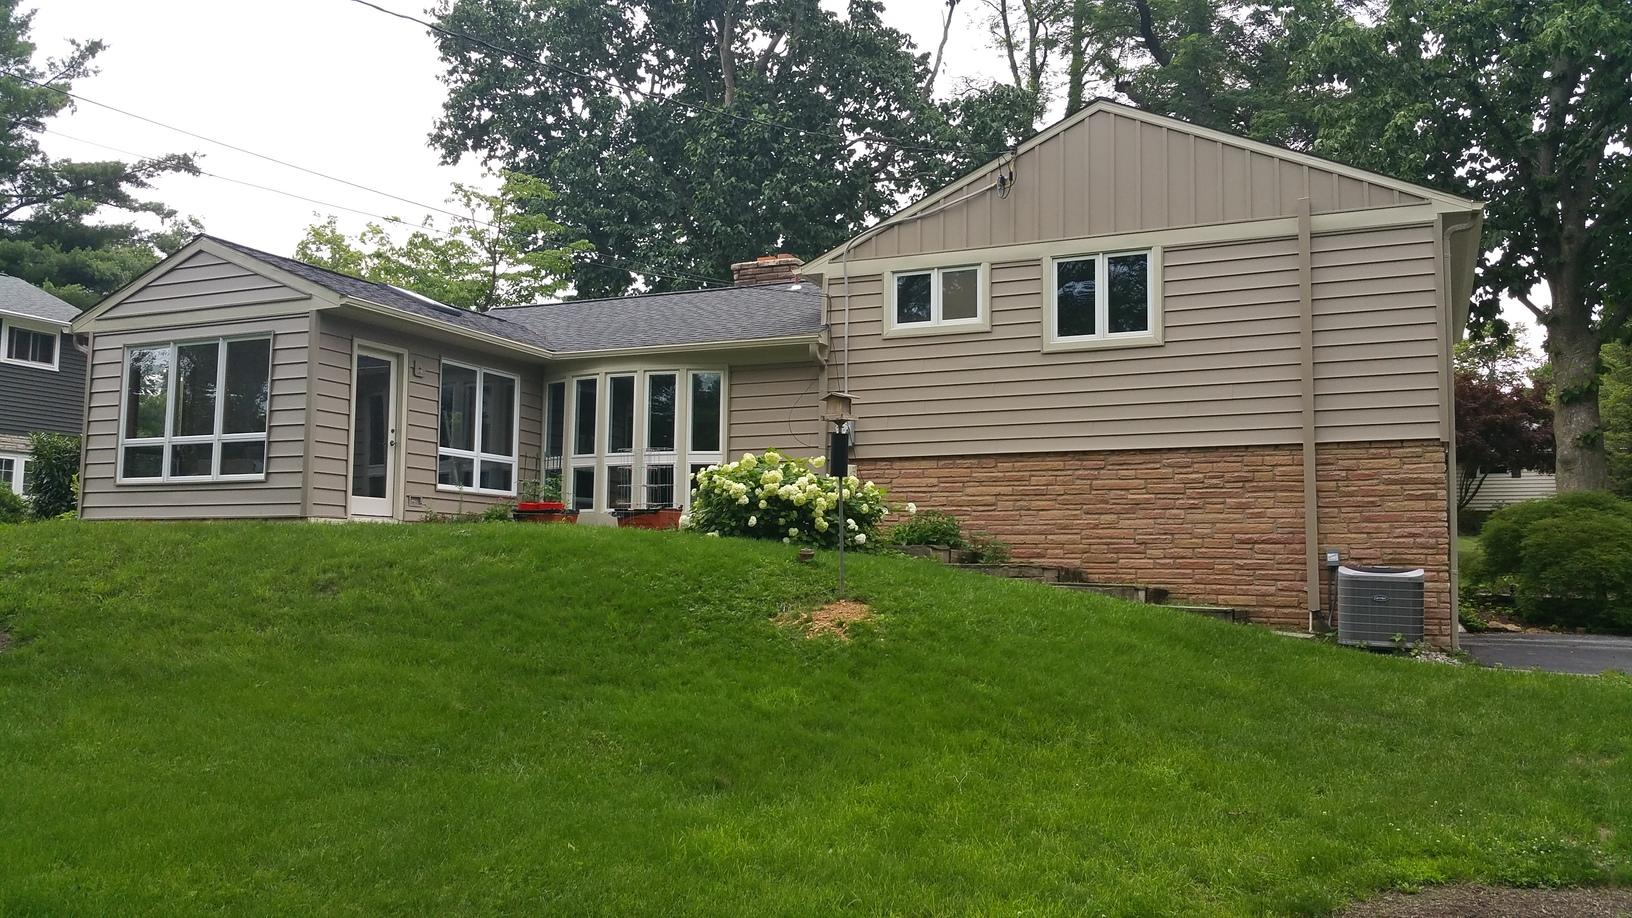 Roofing and Siding replacement in Paoli - Like a new house! - After Photo